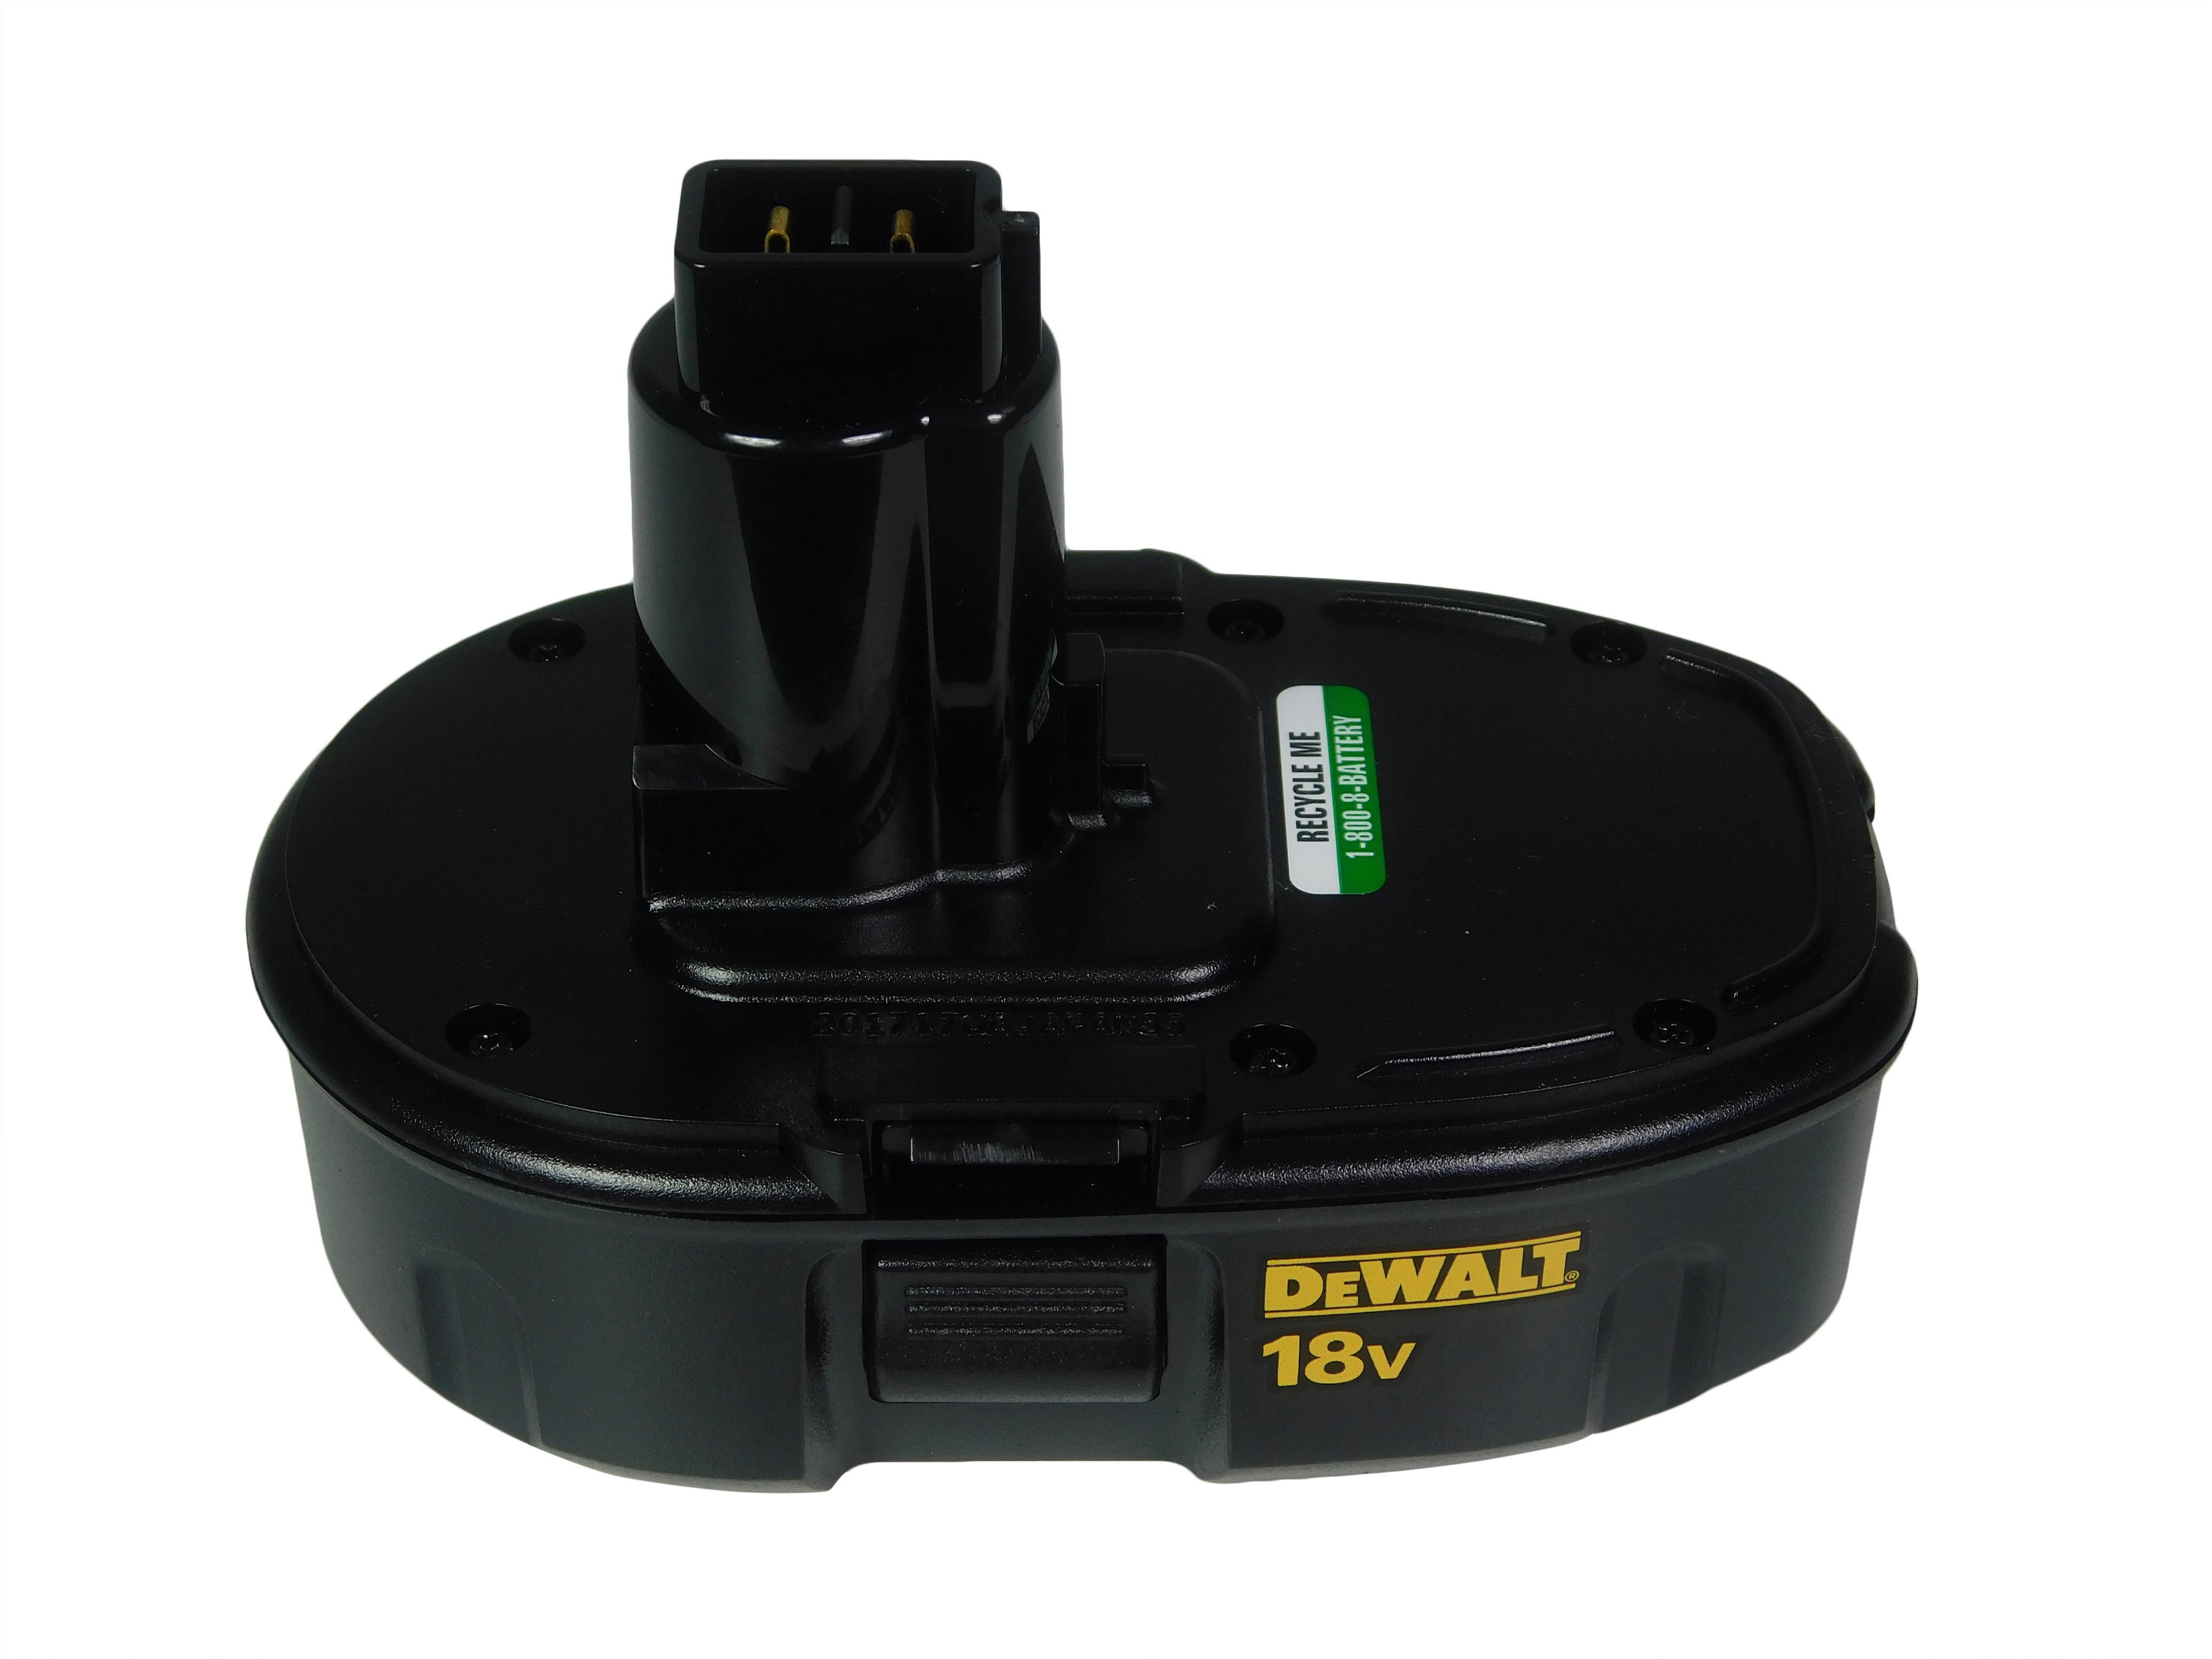 Dewalt-DC9098-18V-Ni-Cad-Battery-Single-Pack-image-13